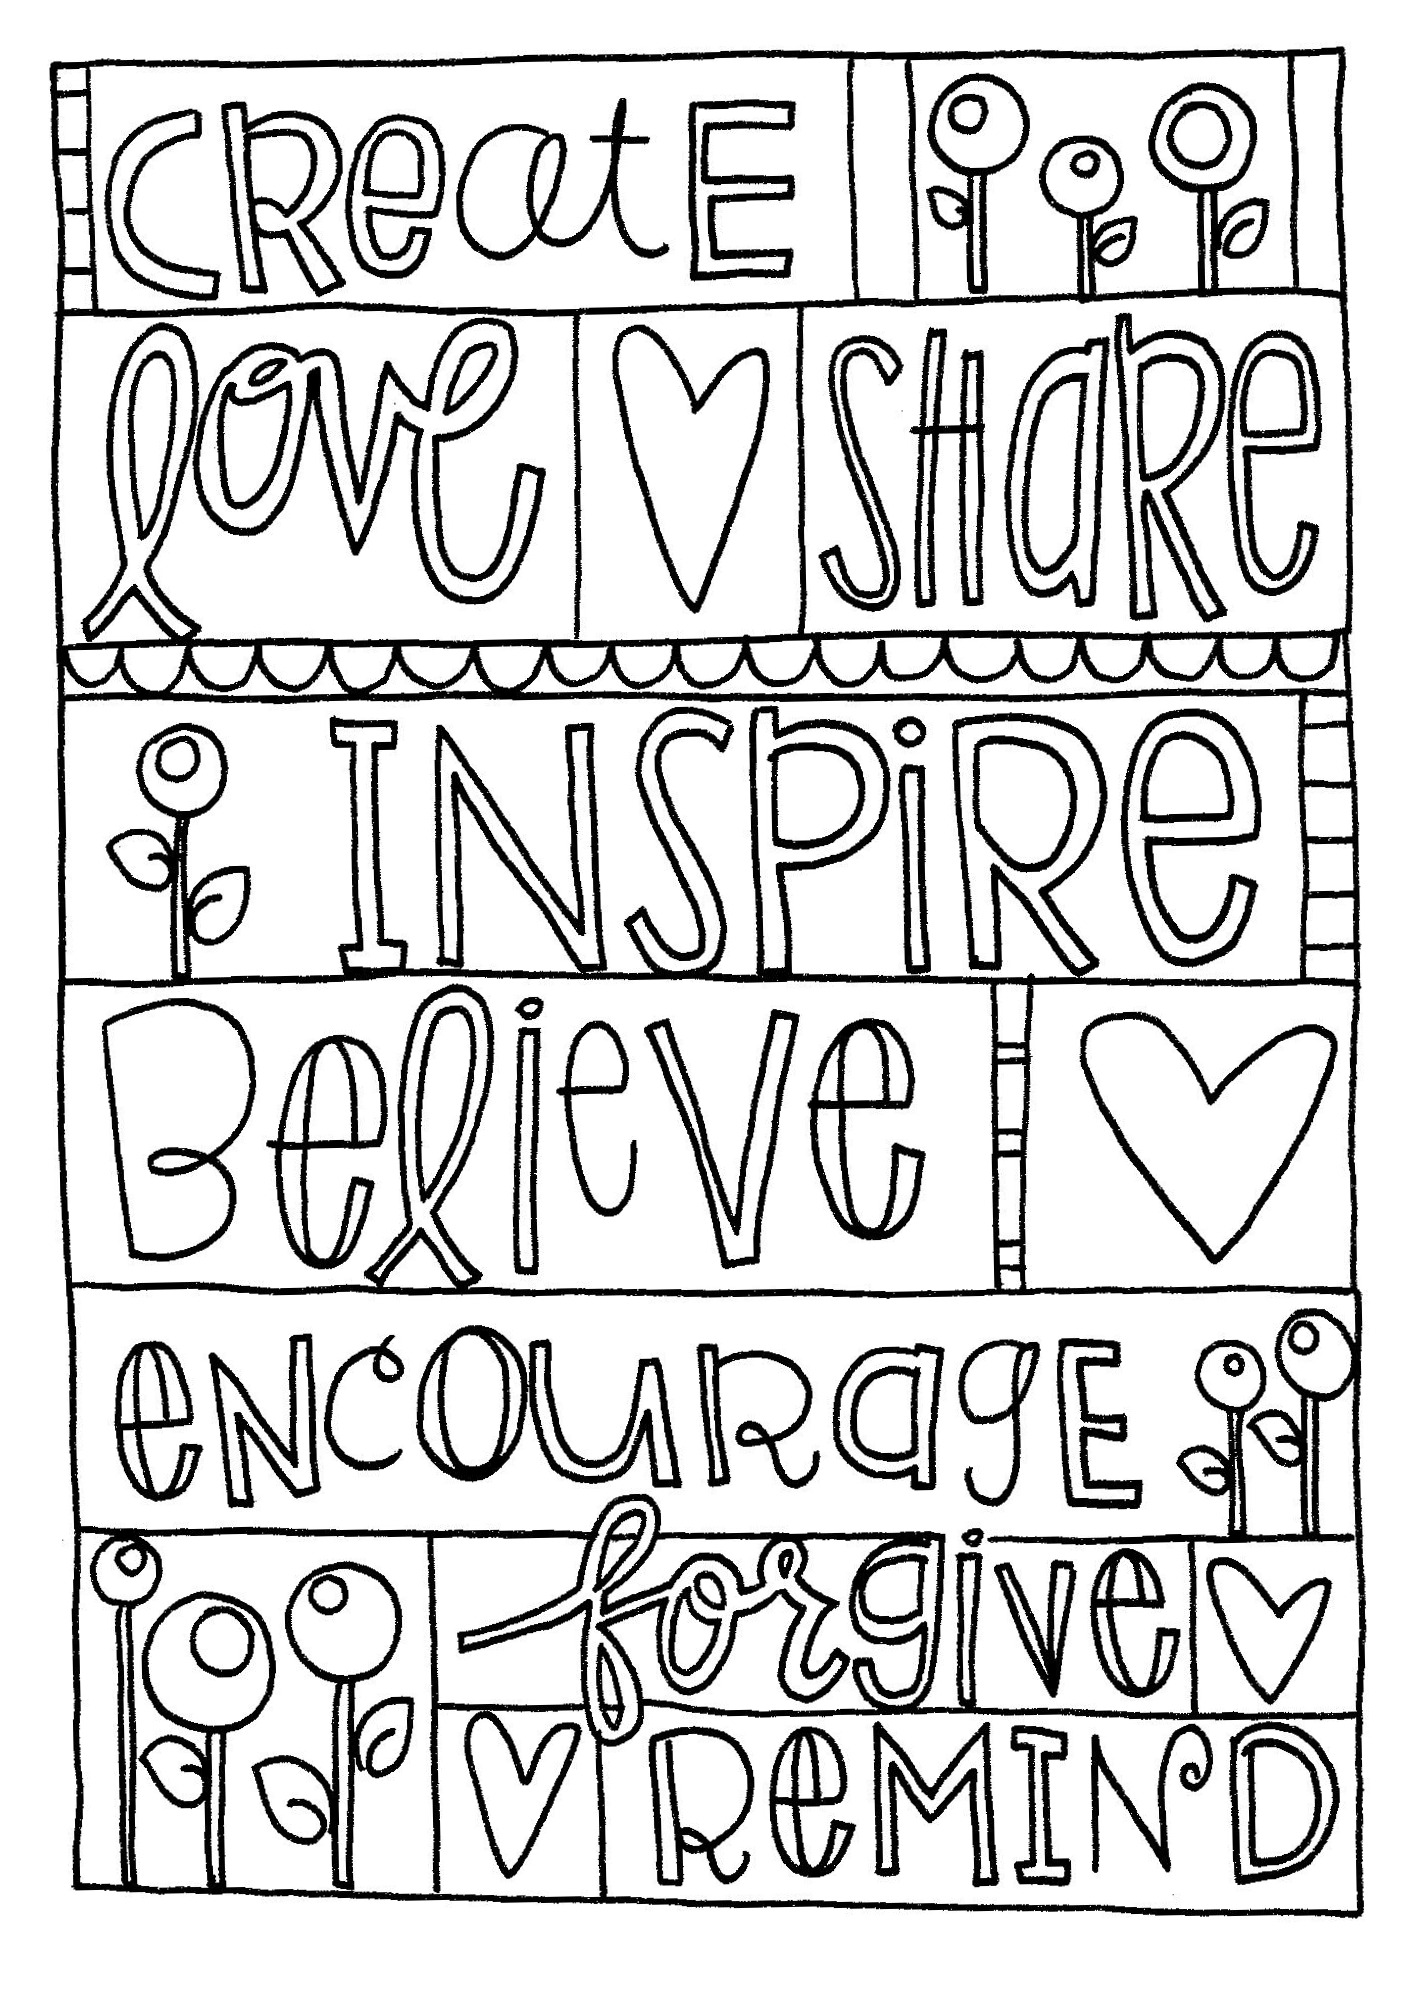 1428x2015 Crazy Designs Coloring Pages Images